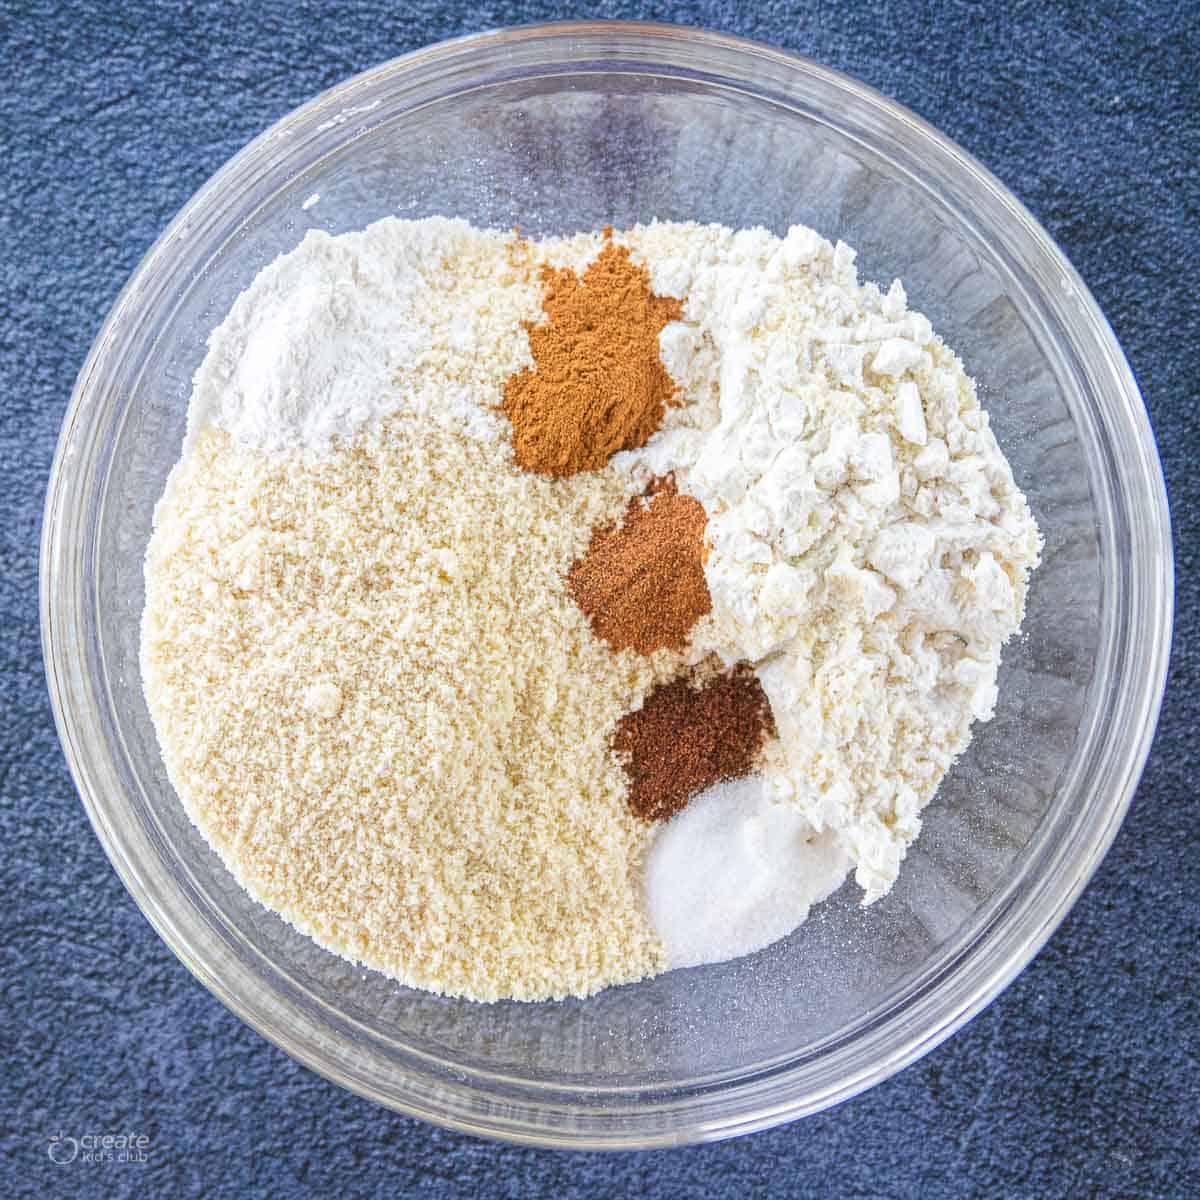 dry ingredients in a mixing bowl for Bundt cake